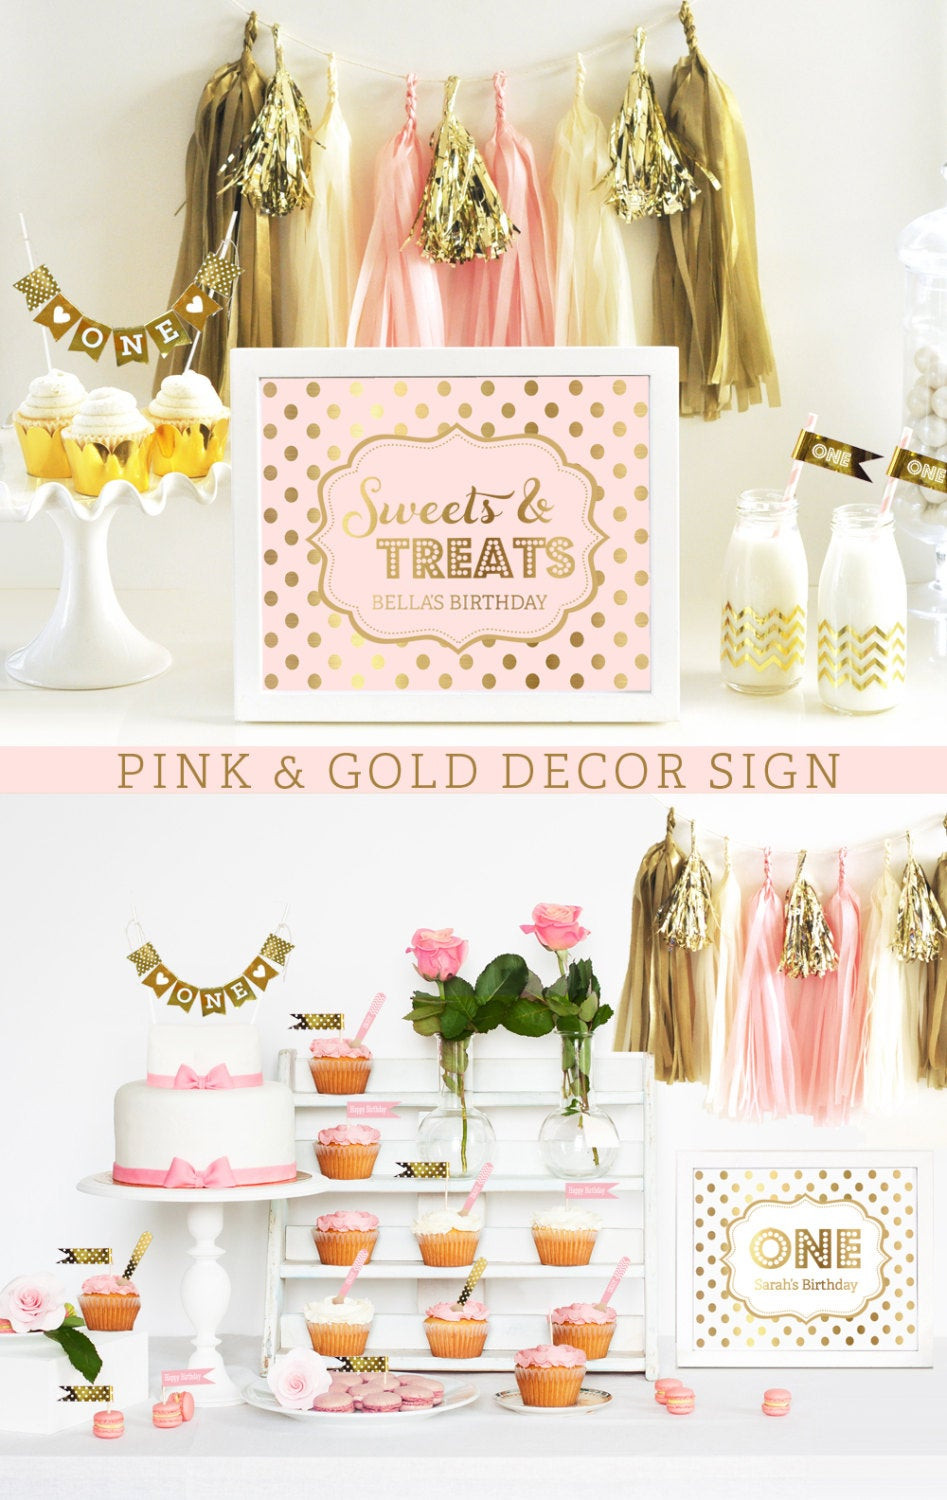 Best ideas about Pink And Gold First Birthday Decorations . Save or Pin Pink and Gold Decorations Pink and Gold First Birthday Pink Now.